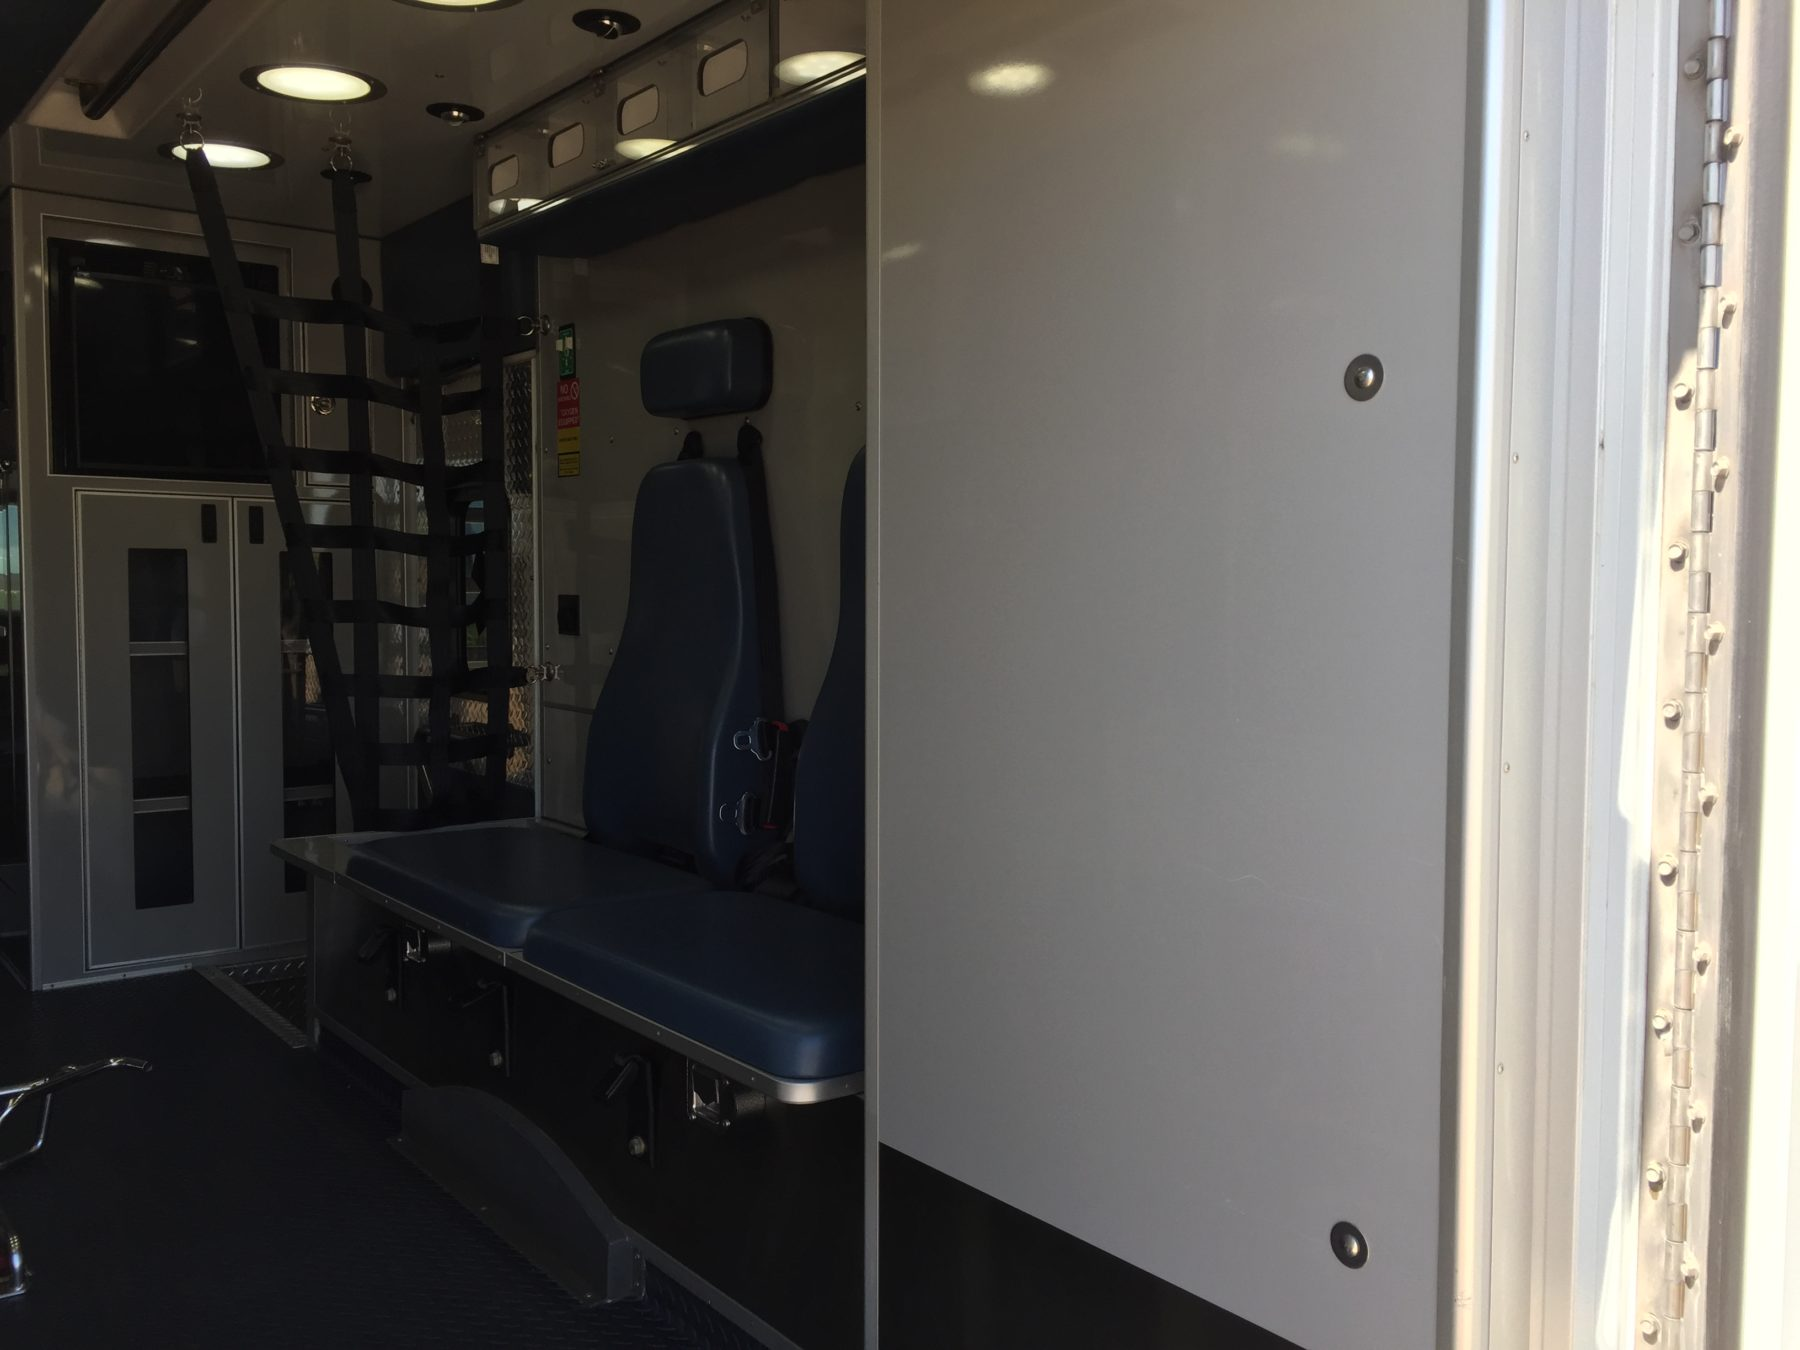 2011 International 4300 Heavy Duty Ambulance For Sale – Picture 12